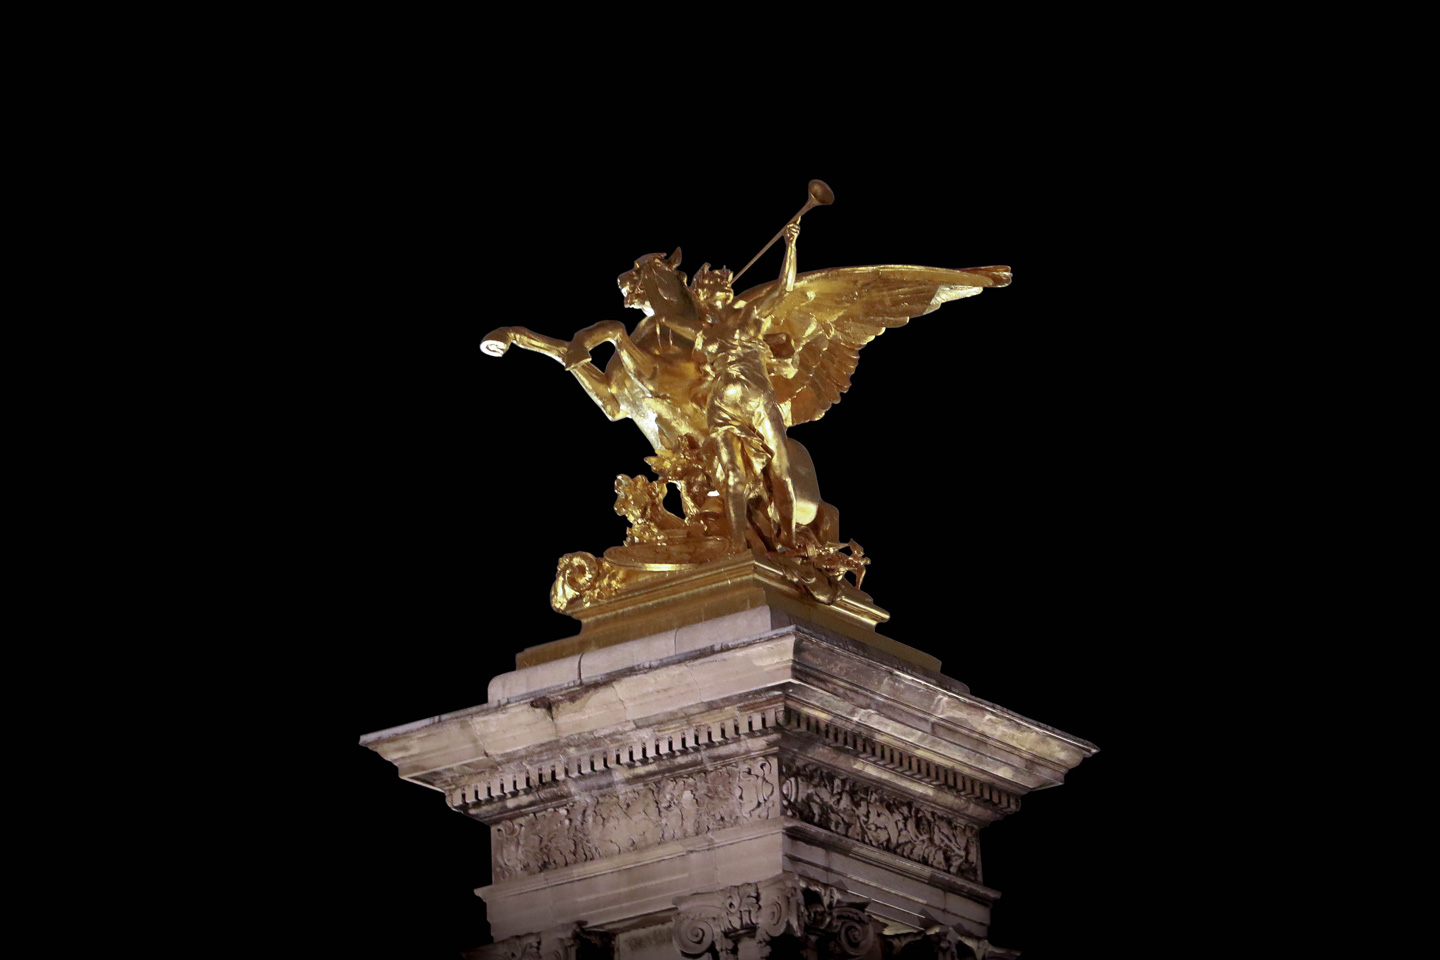 French Photographer Street Photography Gilded Statue of Pegasus Held By Fame